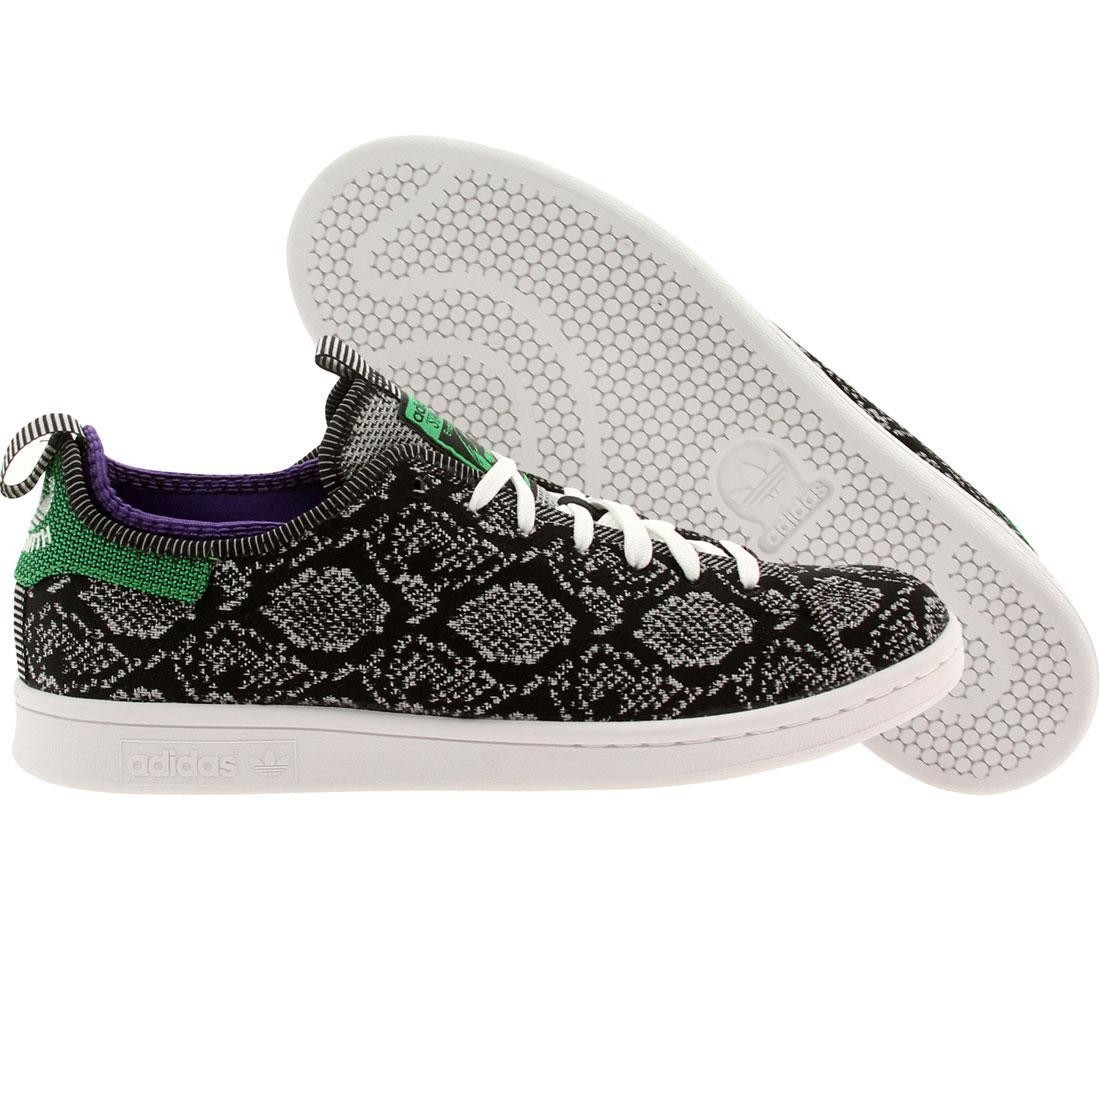 【海外限定】アディダス メンズ靴 靴 【 ADIDAS X CNCPTS MEN STAN SMITH EM BLACK CLONIX PURPLE 】